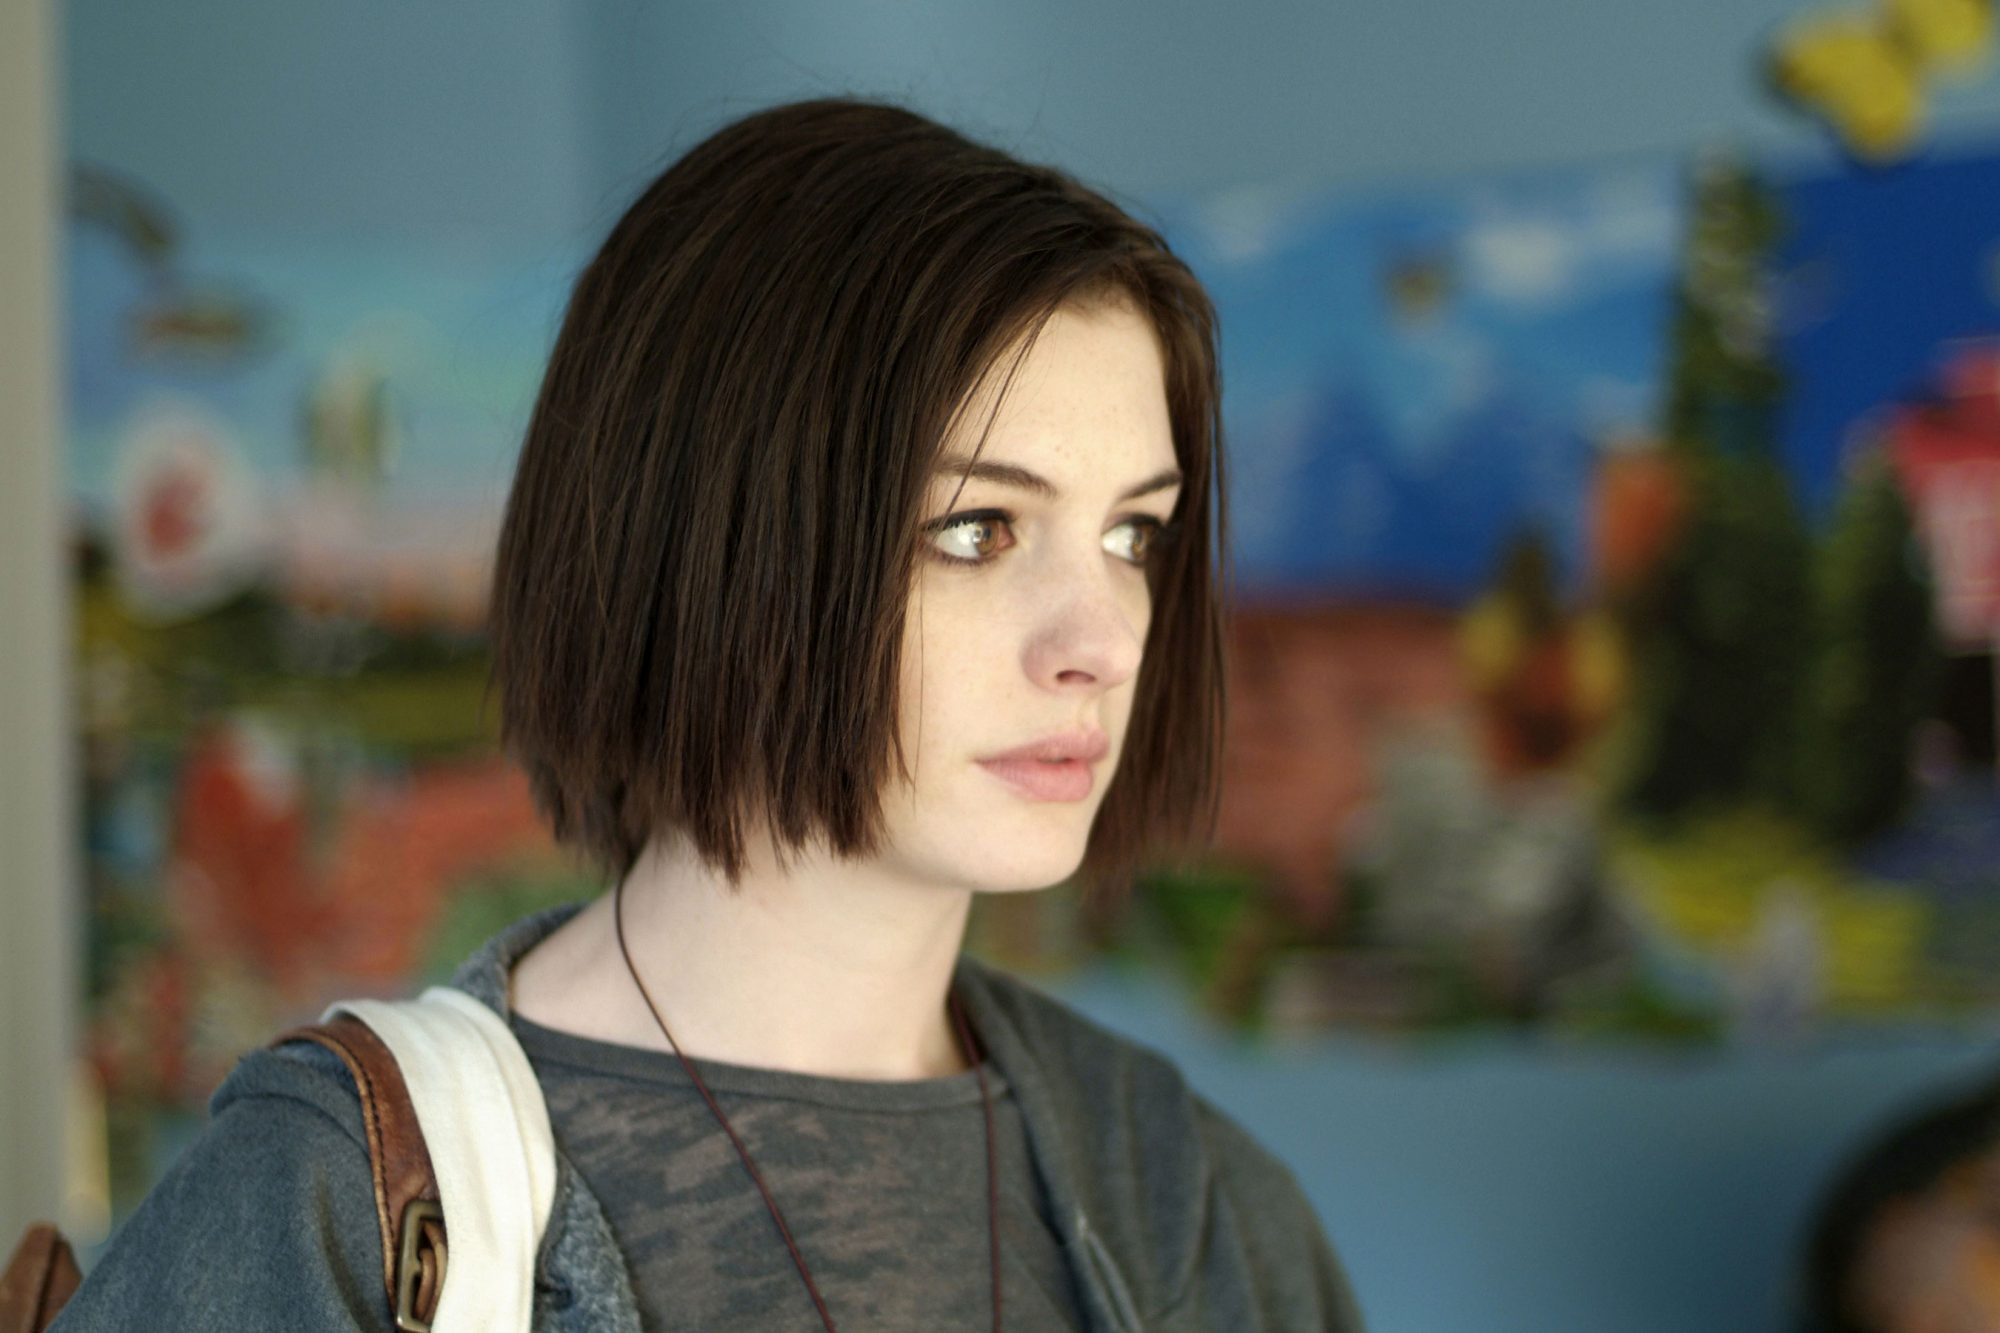 RACHEL GETTING MARRIED, Anne Hathaway, 2008. ©Sony Pictures Classics/Courtesy Everett Collection